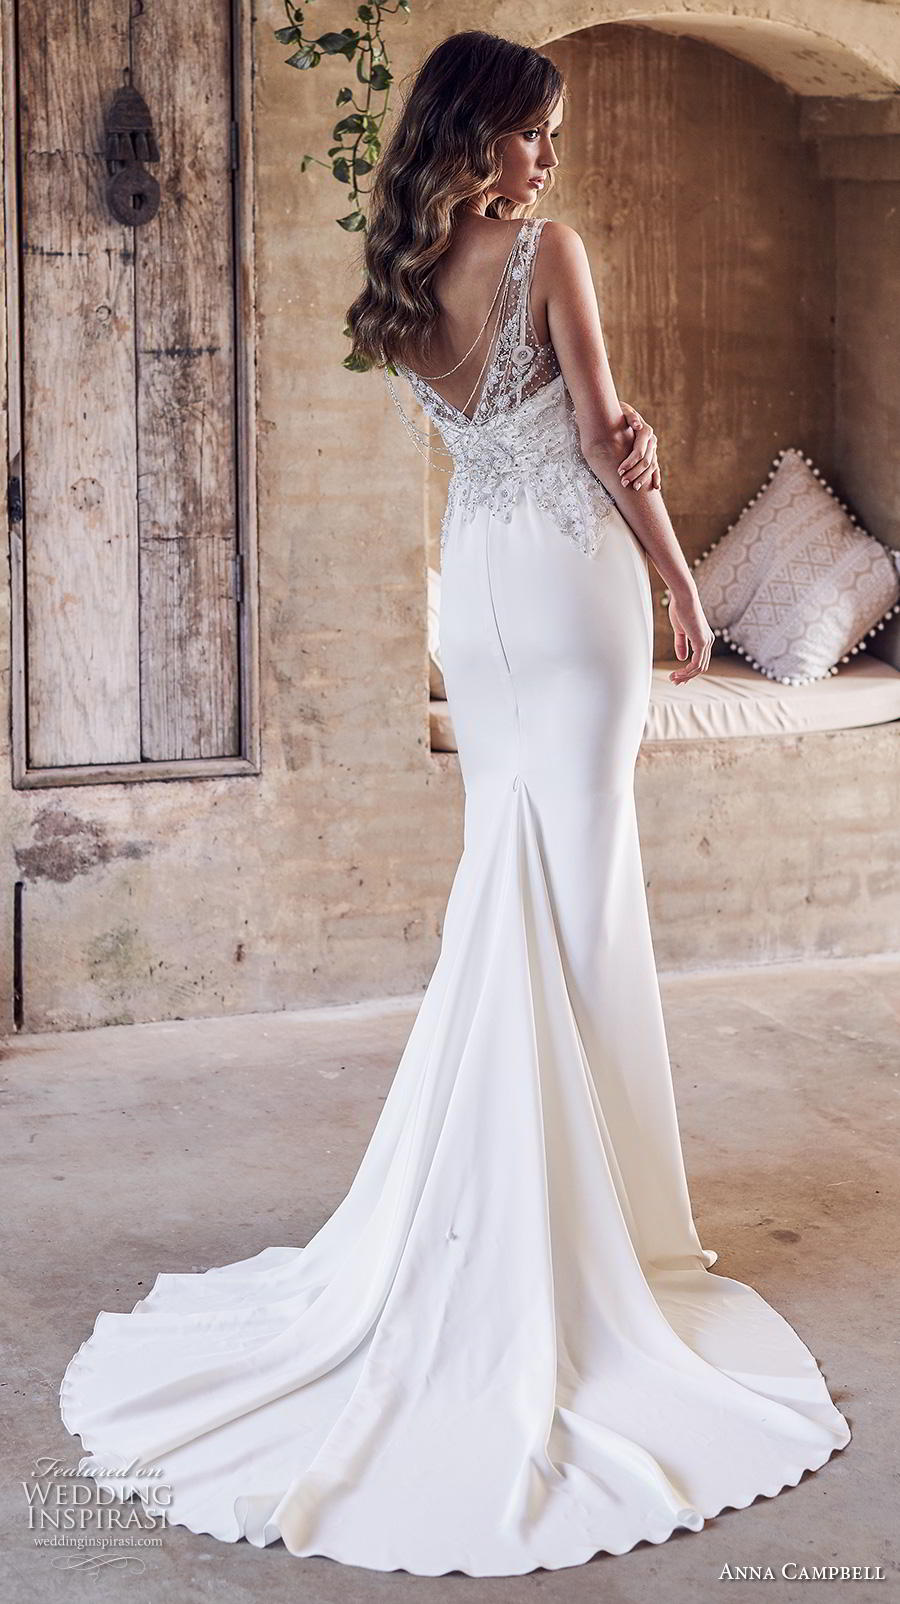 anna campbell 2019 bridal sleeveless v neck heavily embellished bodice elegant sheath fit and flare wedding dress v back medium train (16) bv